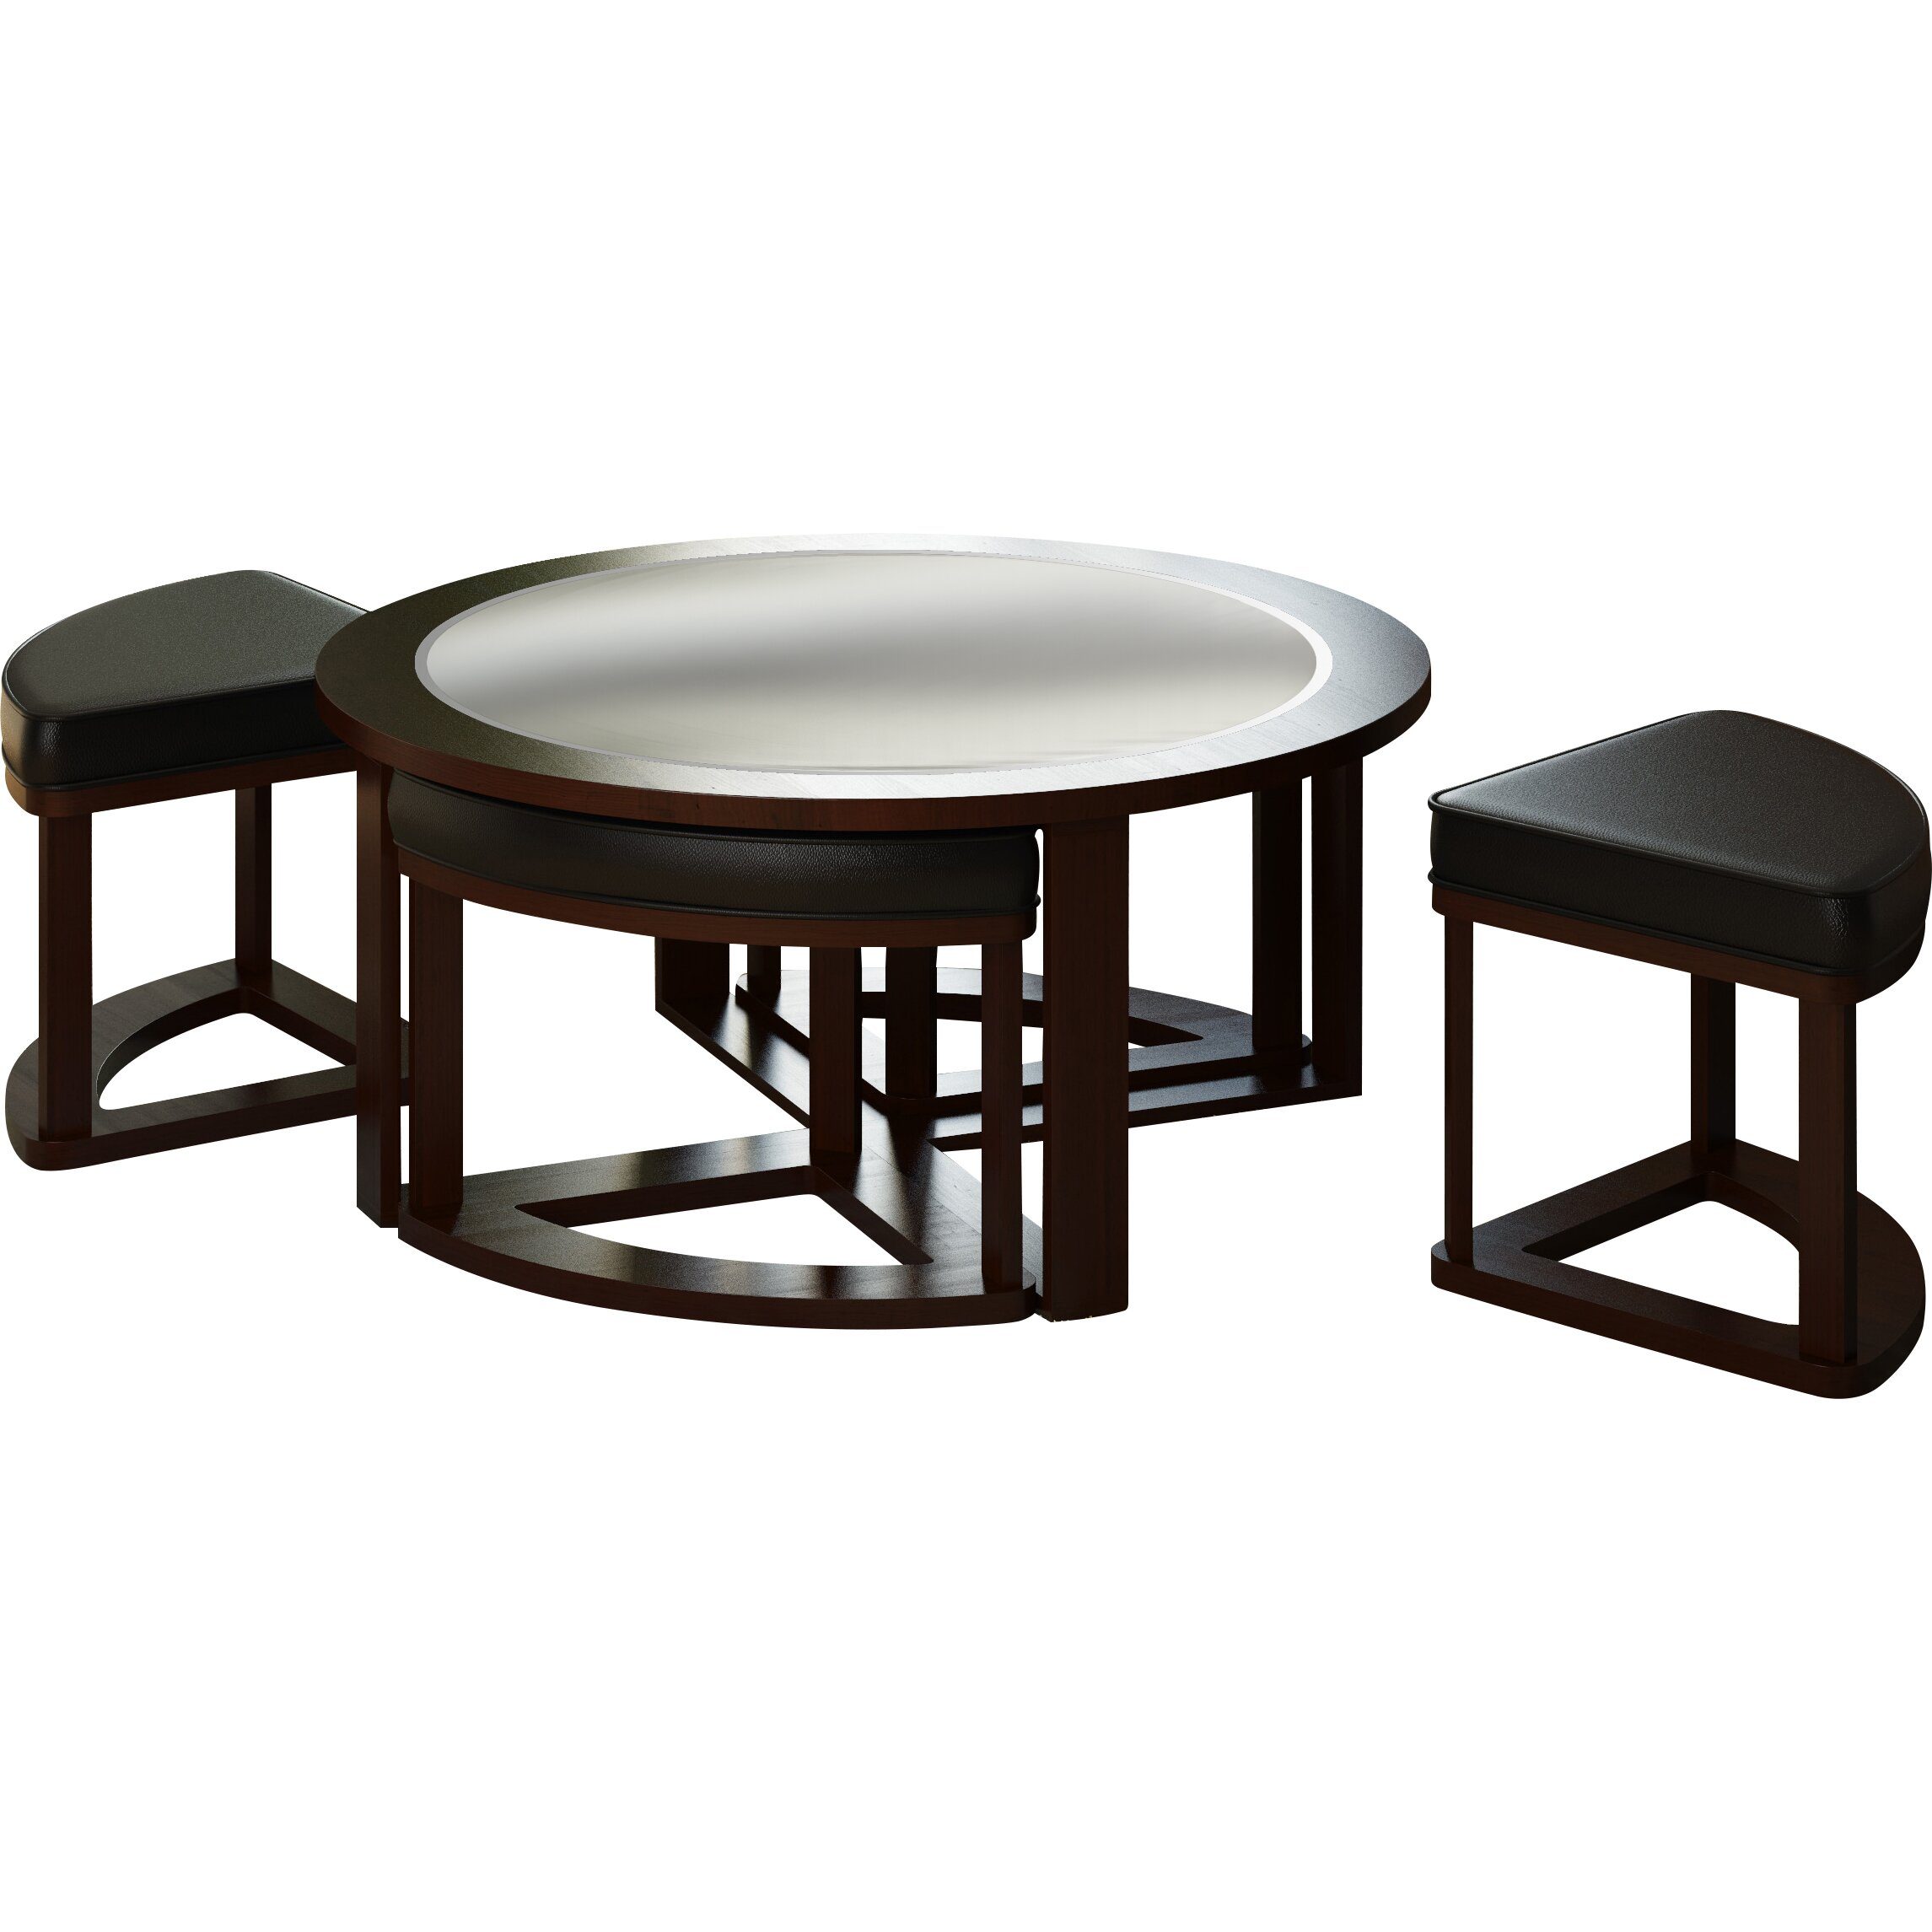 Dcor design belgrove coffee table with 4 stools reviews for Square coffee table with stools